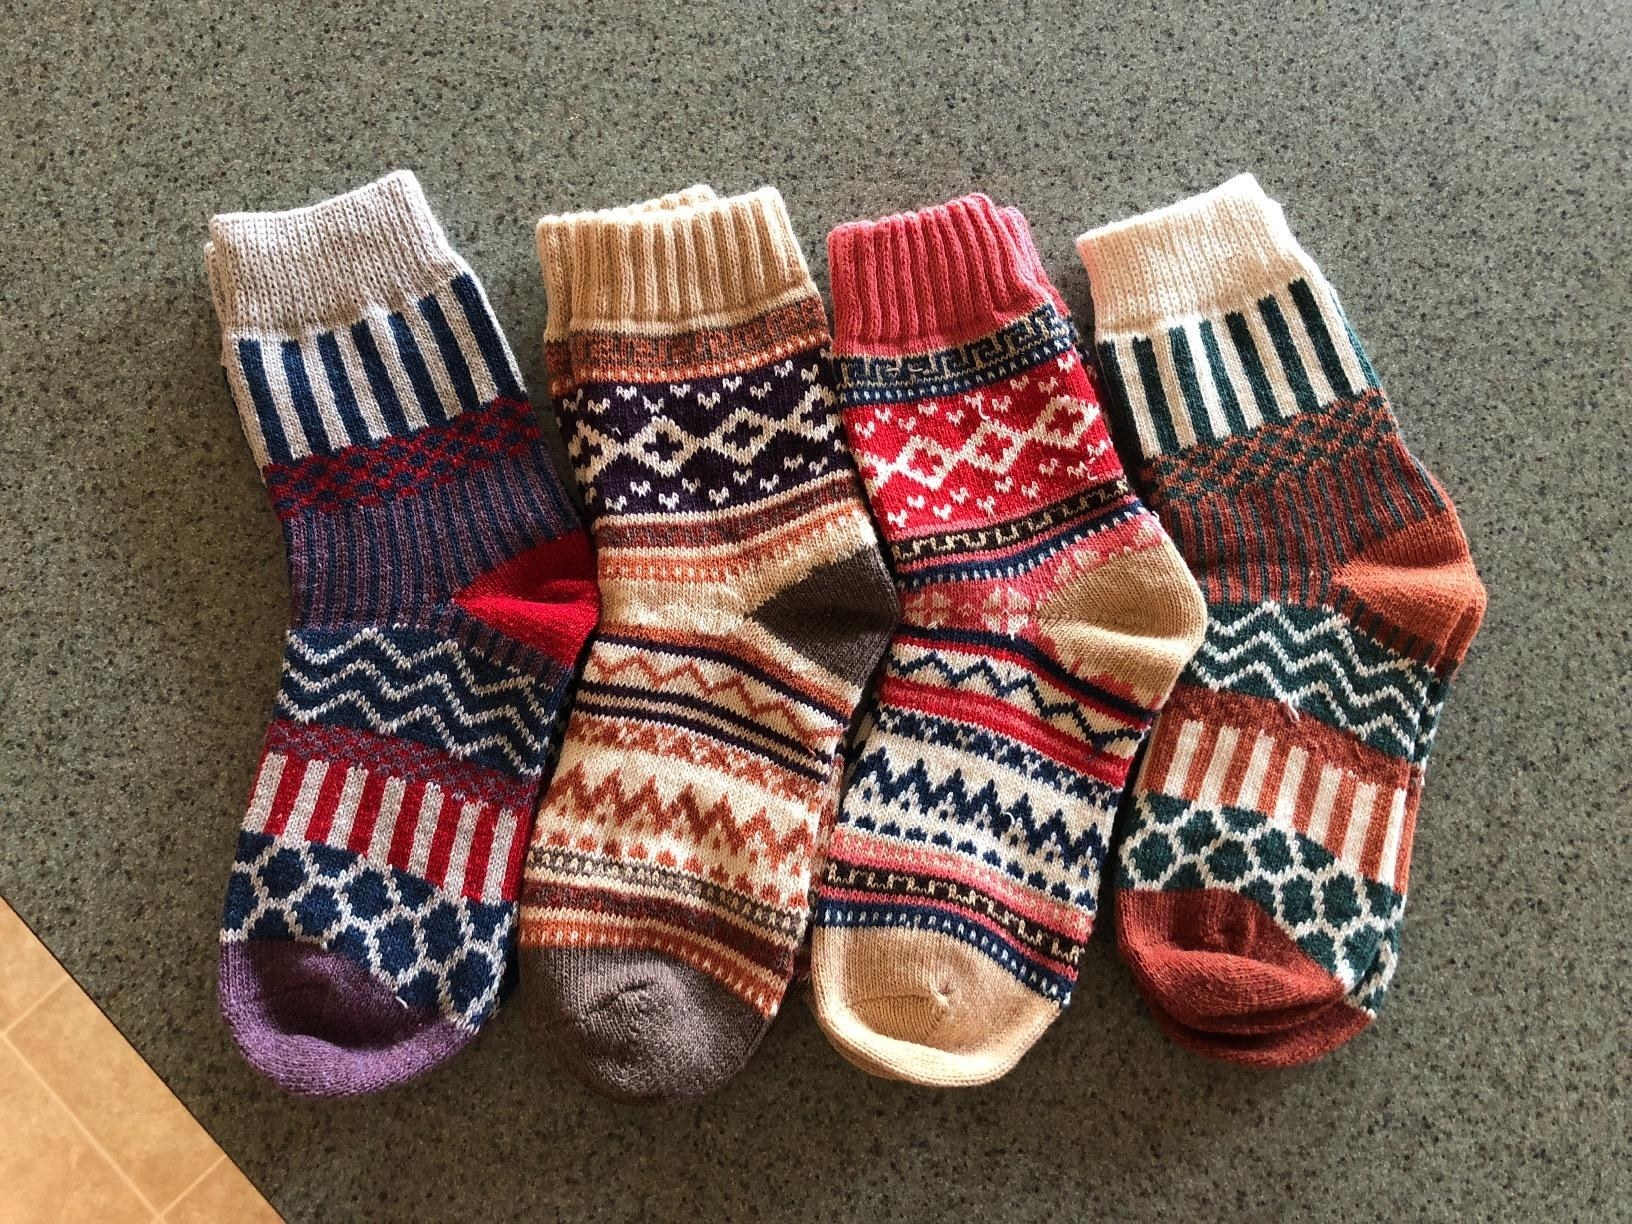 Reviewer photo of four socks in different colorful patterns